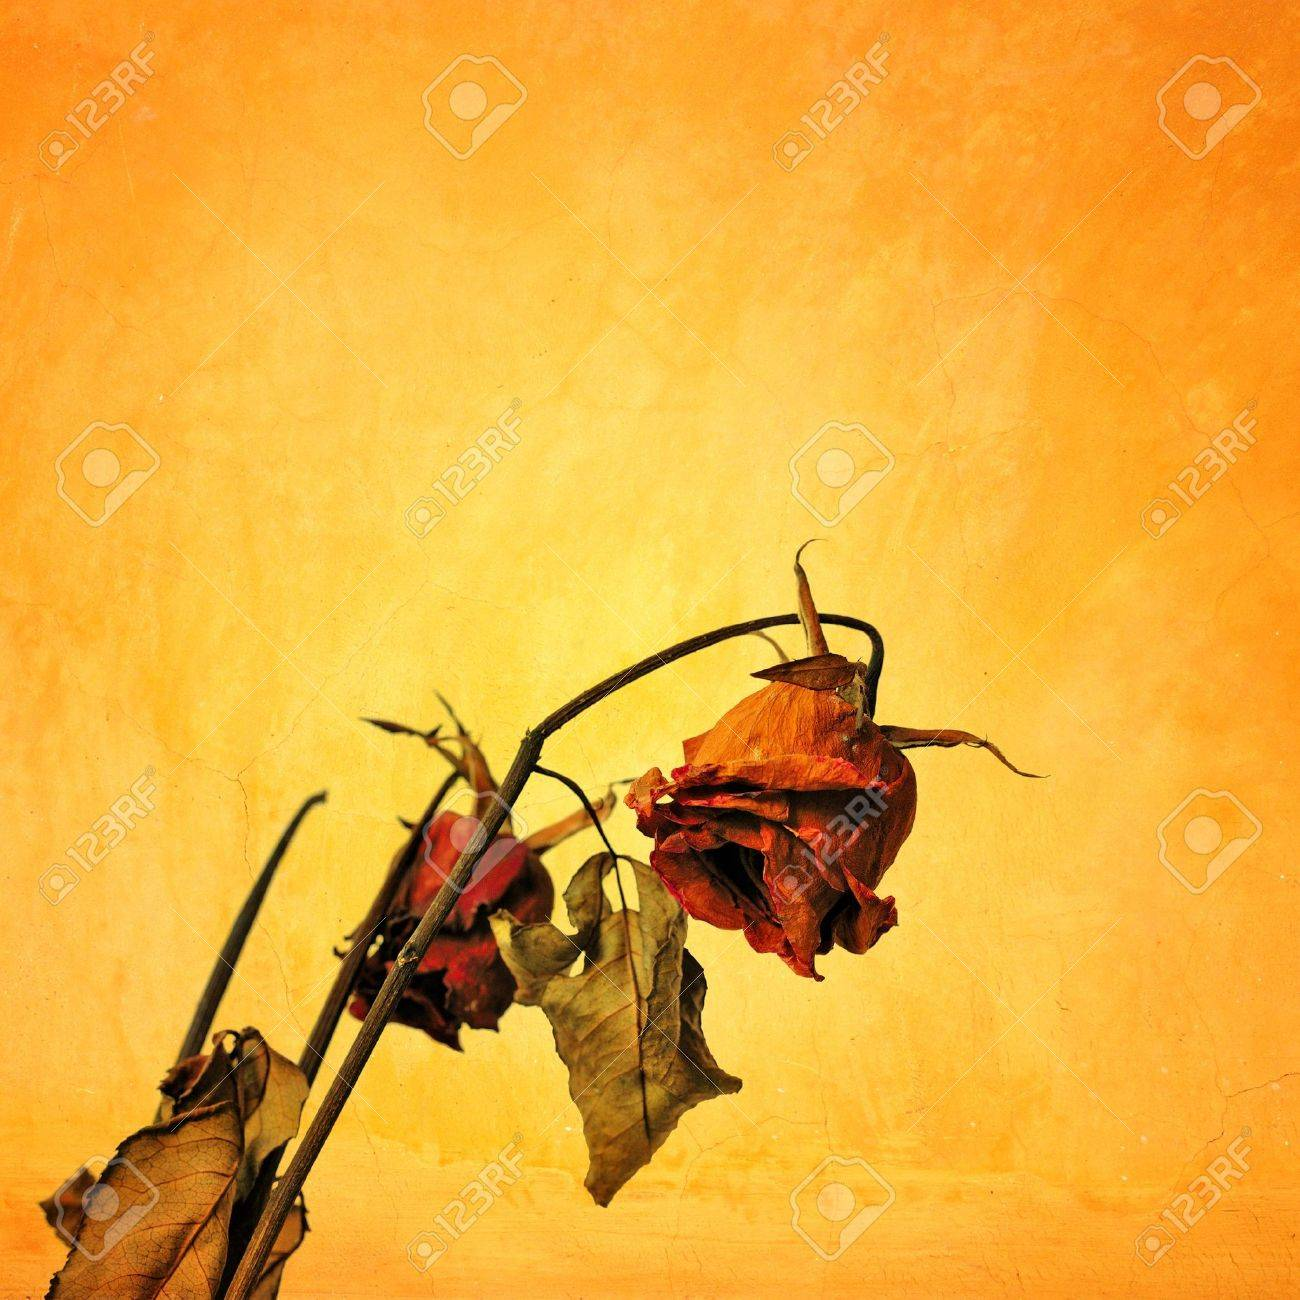 Dried rose in grunge style, Concept of Sad Valentine day Stock Photo - 17347025